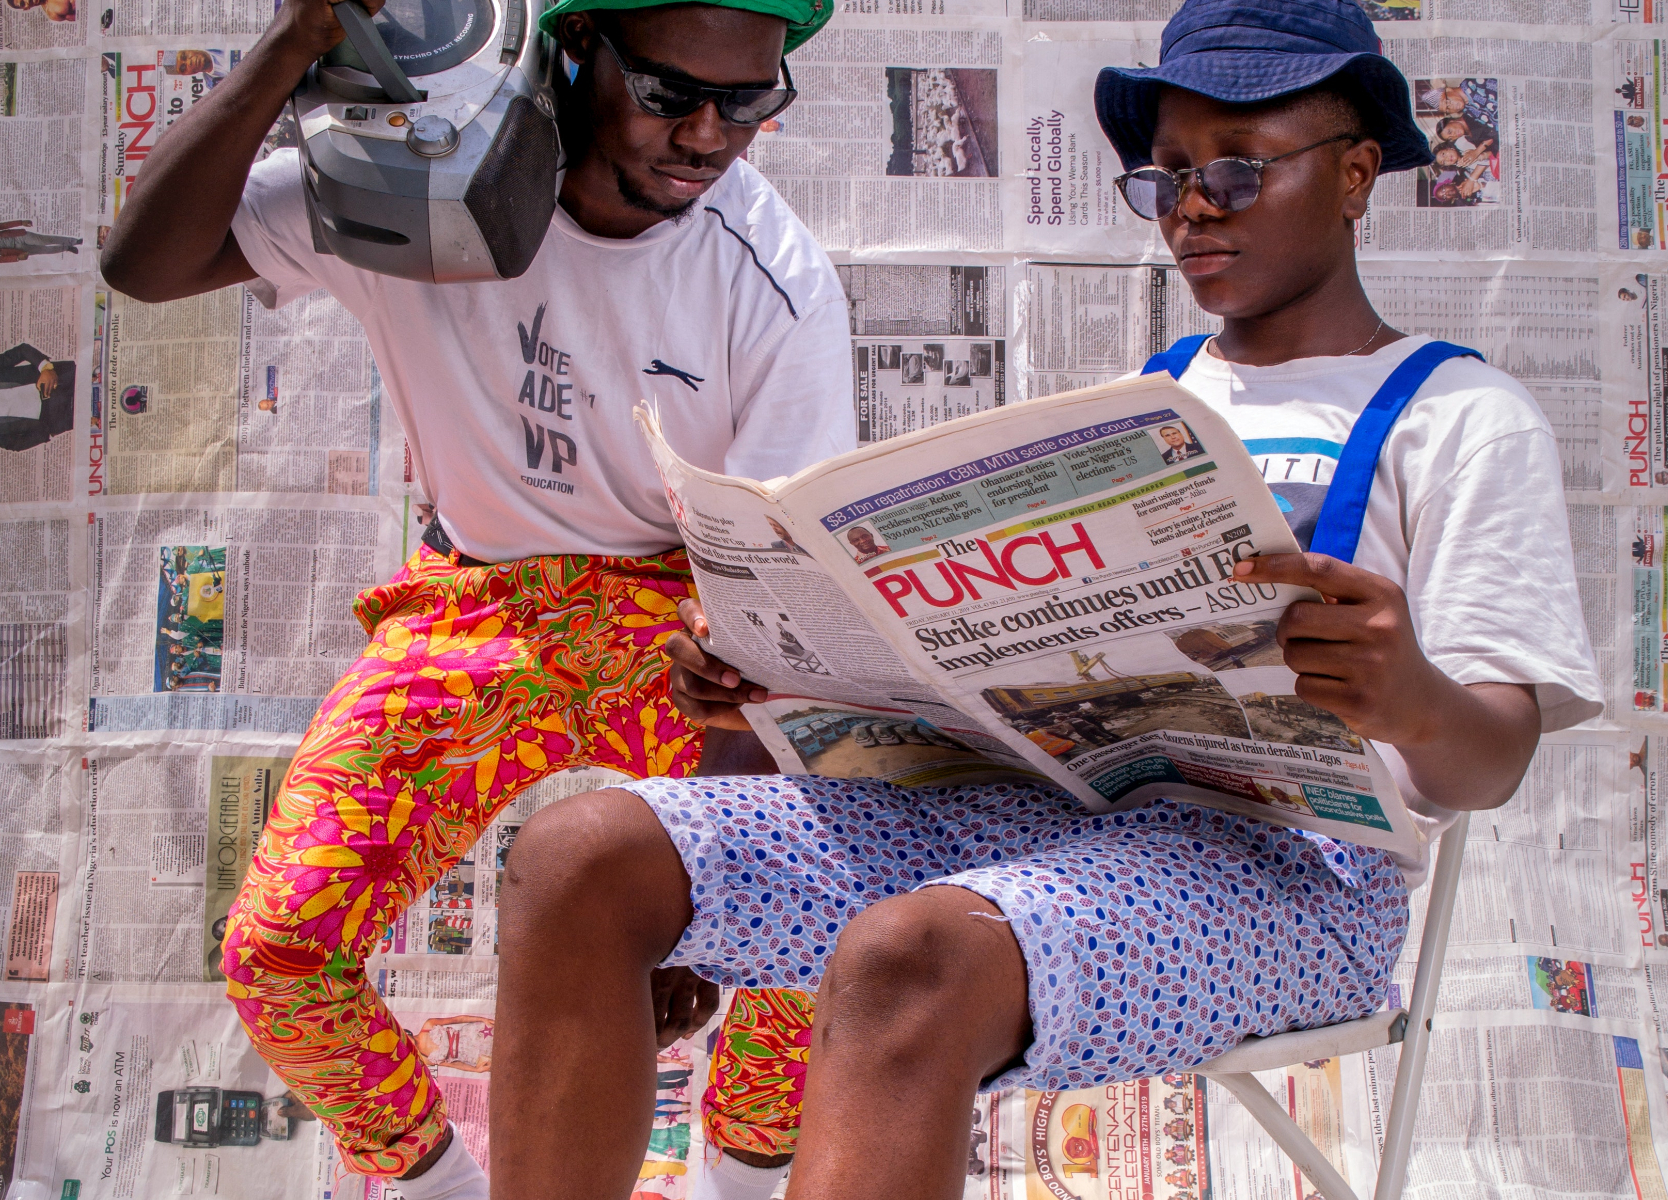 Latest news in Nigeria today is out.